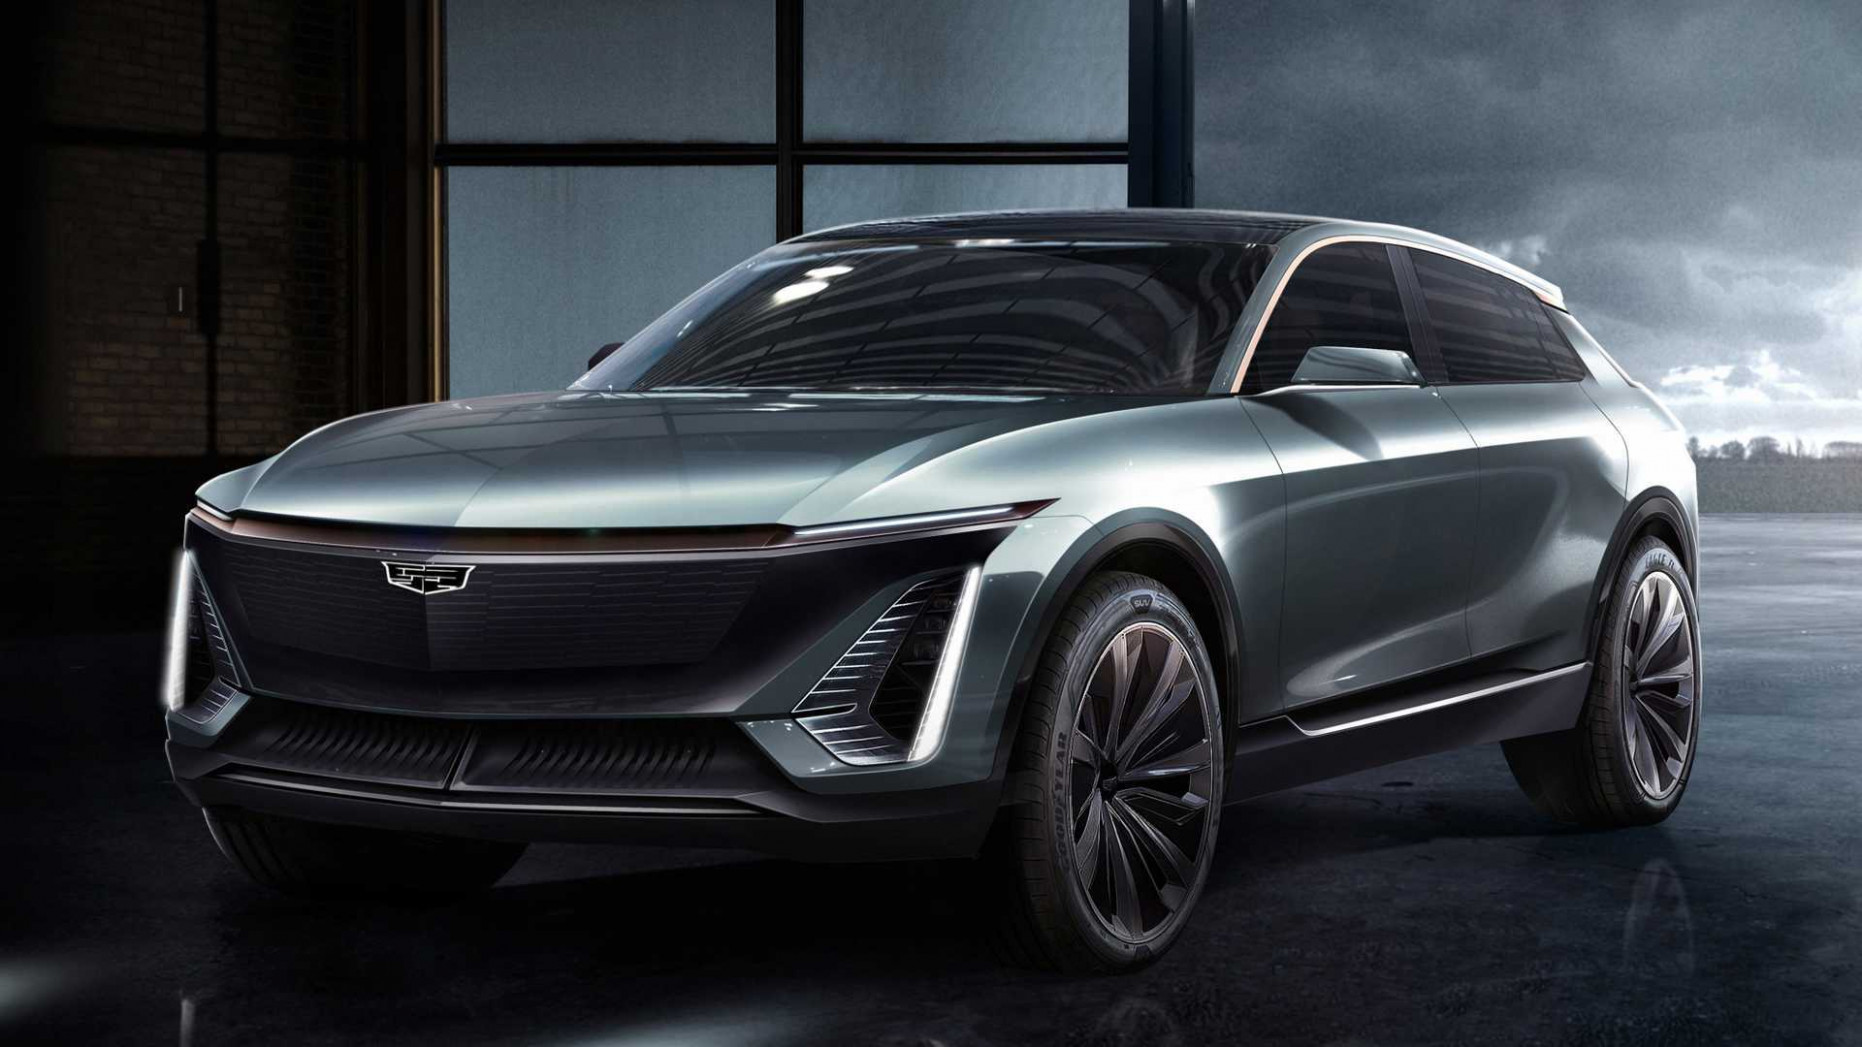 Photos What Cars Will Cadillac Make In 2022